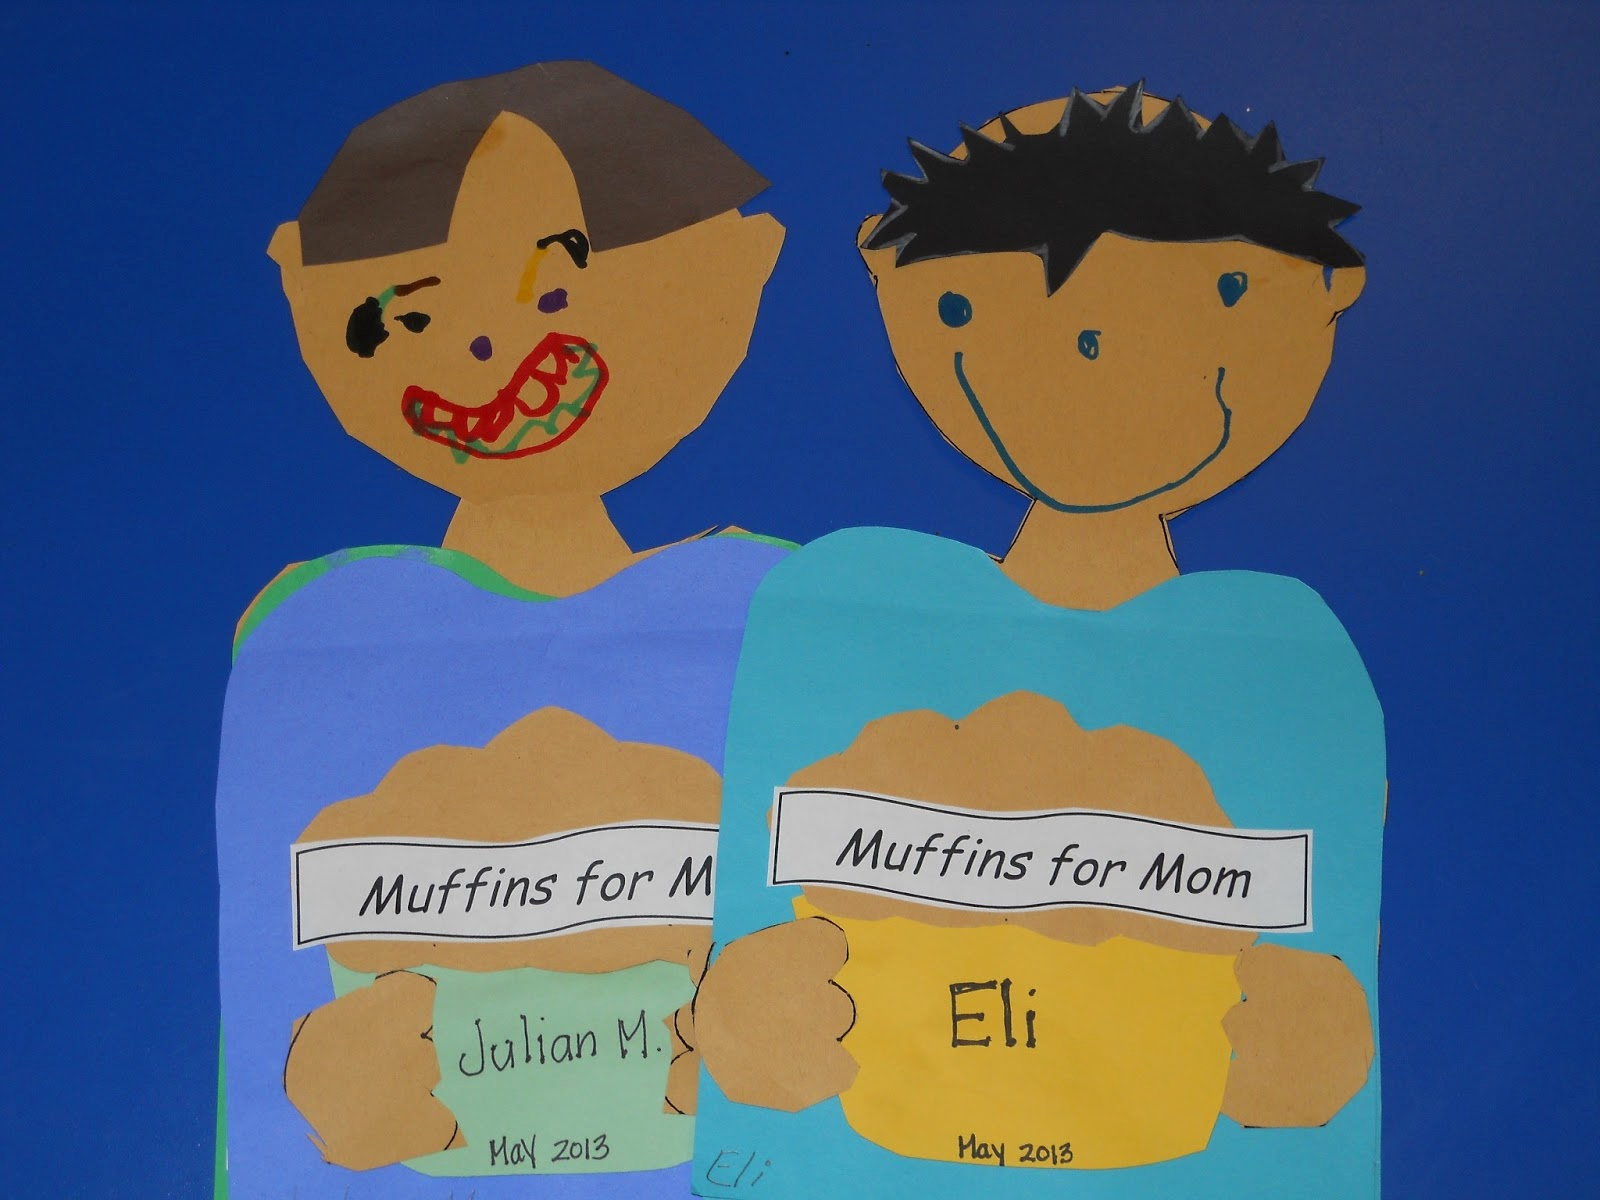 Muffins with Mom Invitation Lovely Learning and Teaching with Preschoolers Muffins for Mom